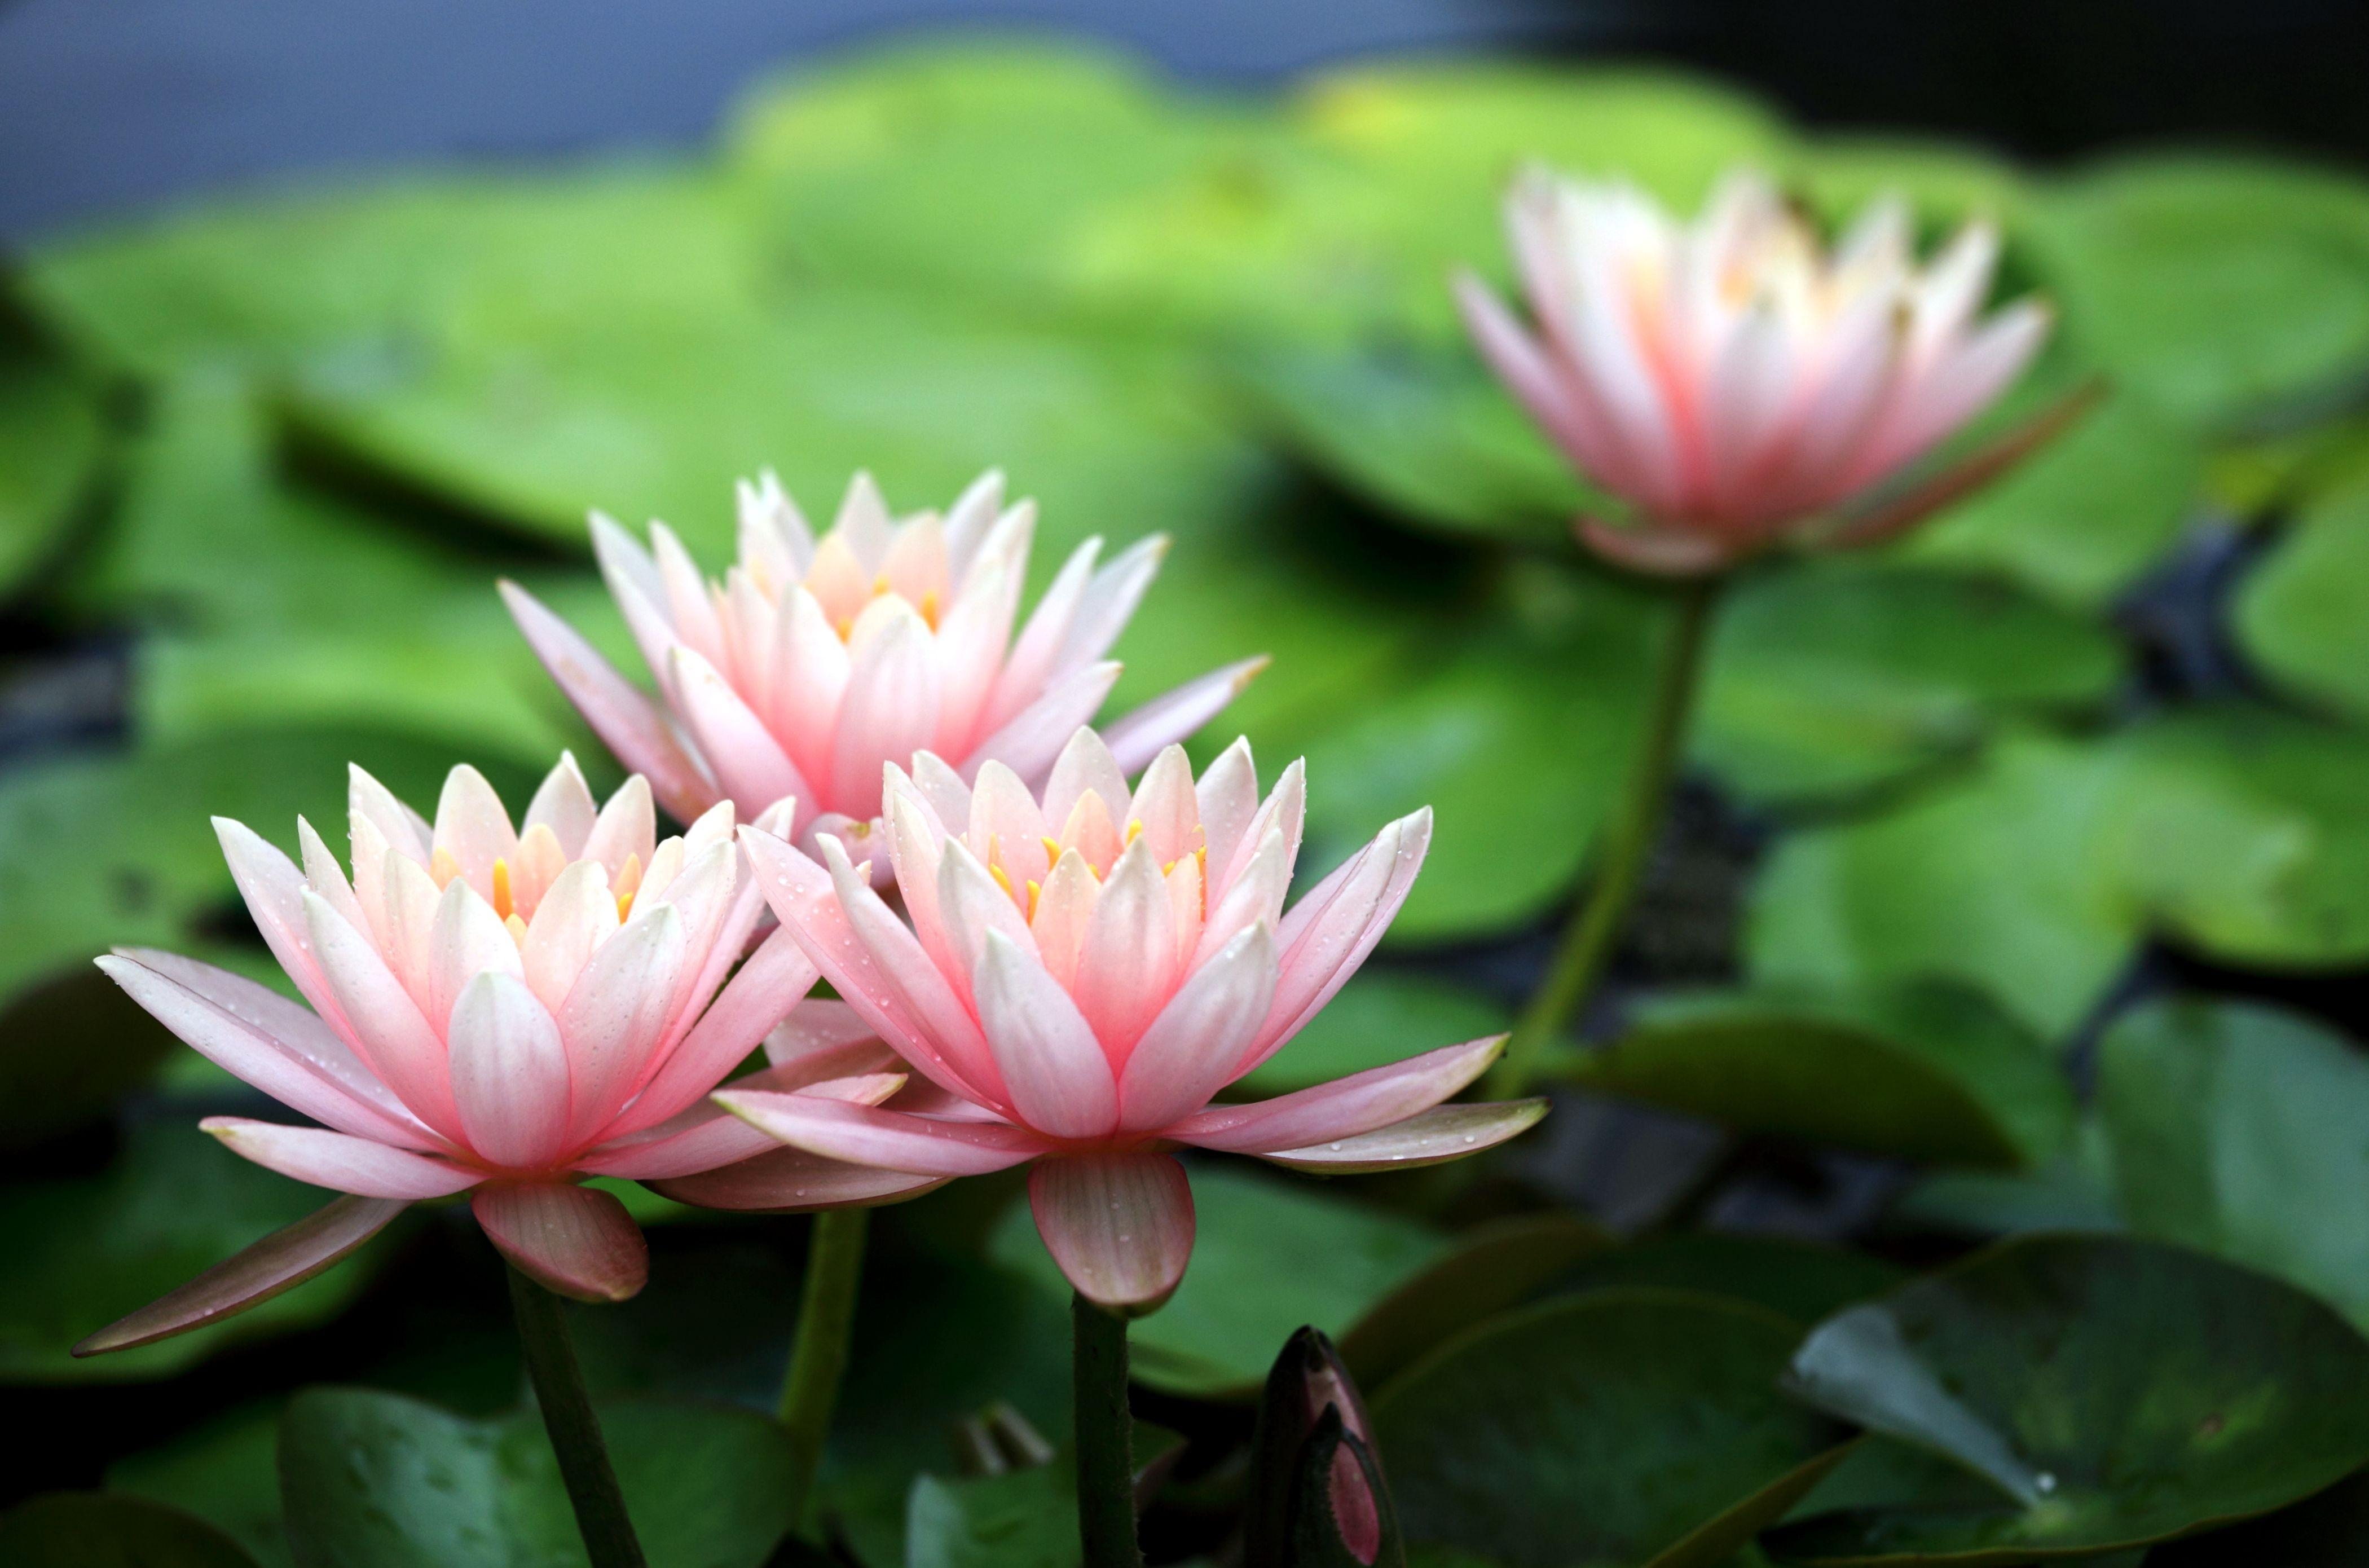 121494 download wallpaper Flowers, Water Lilies, Leaves, Blur, Smooth, Pond, Close-Up screensavers and pictures for free